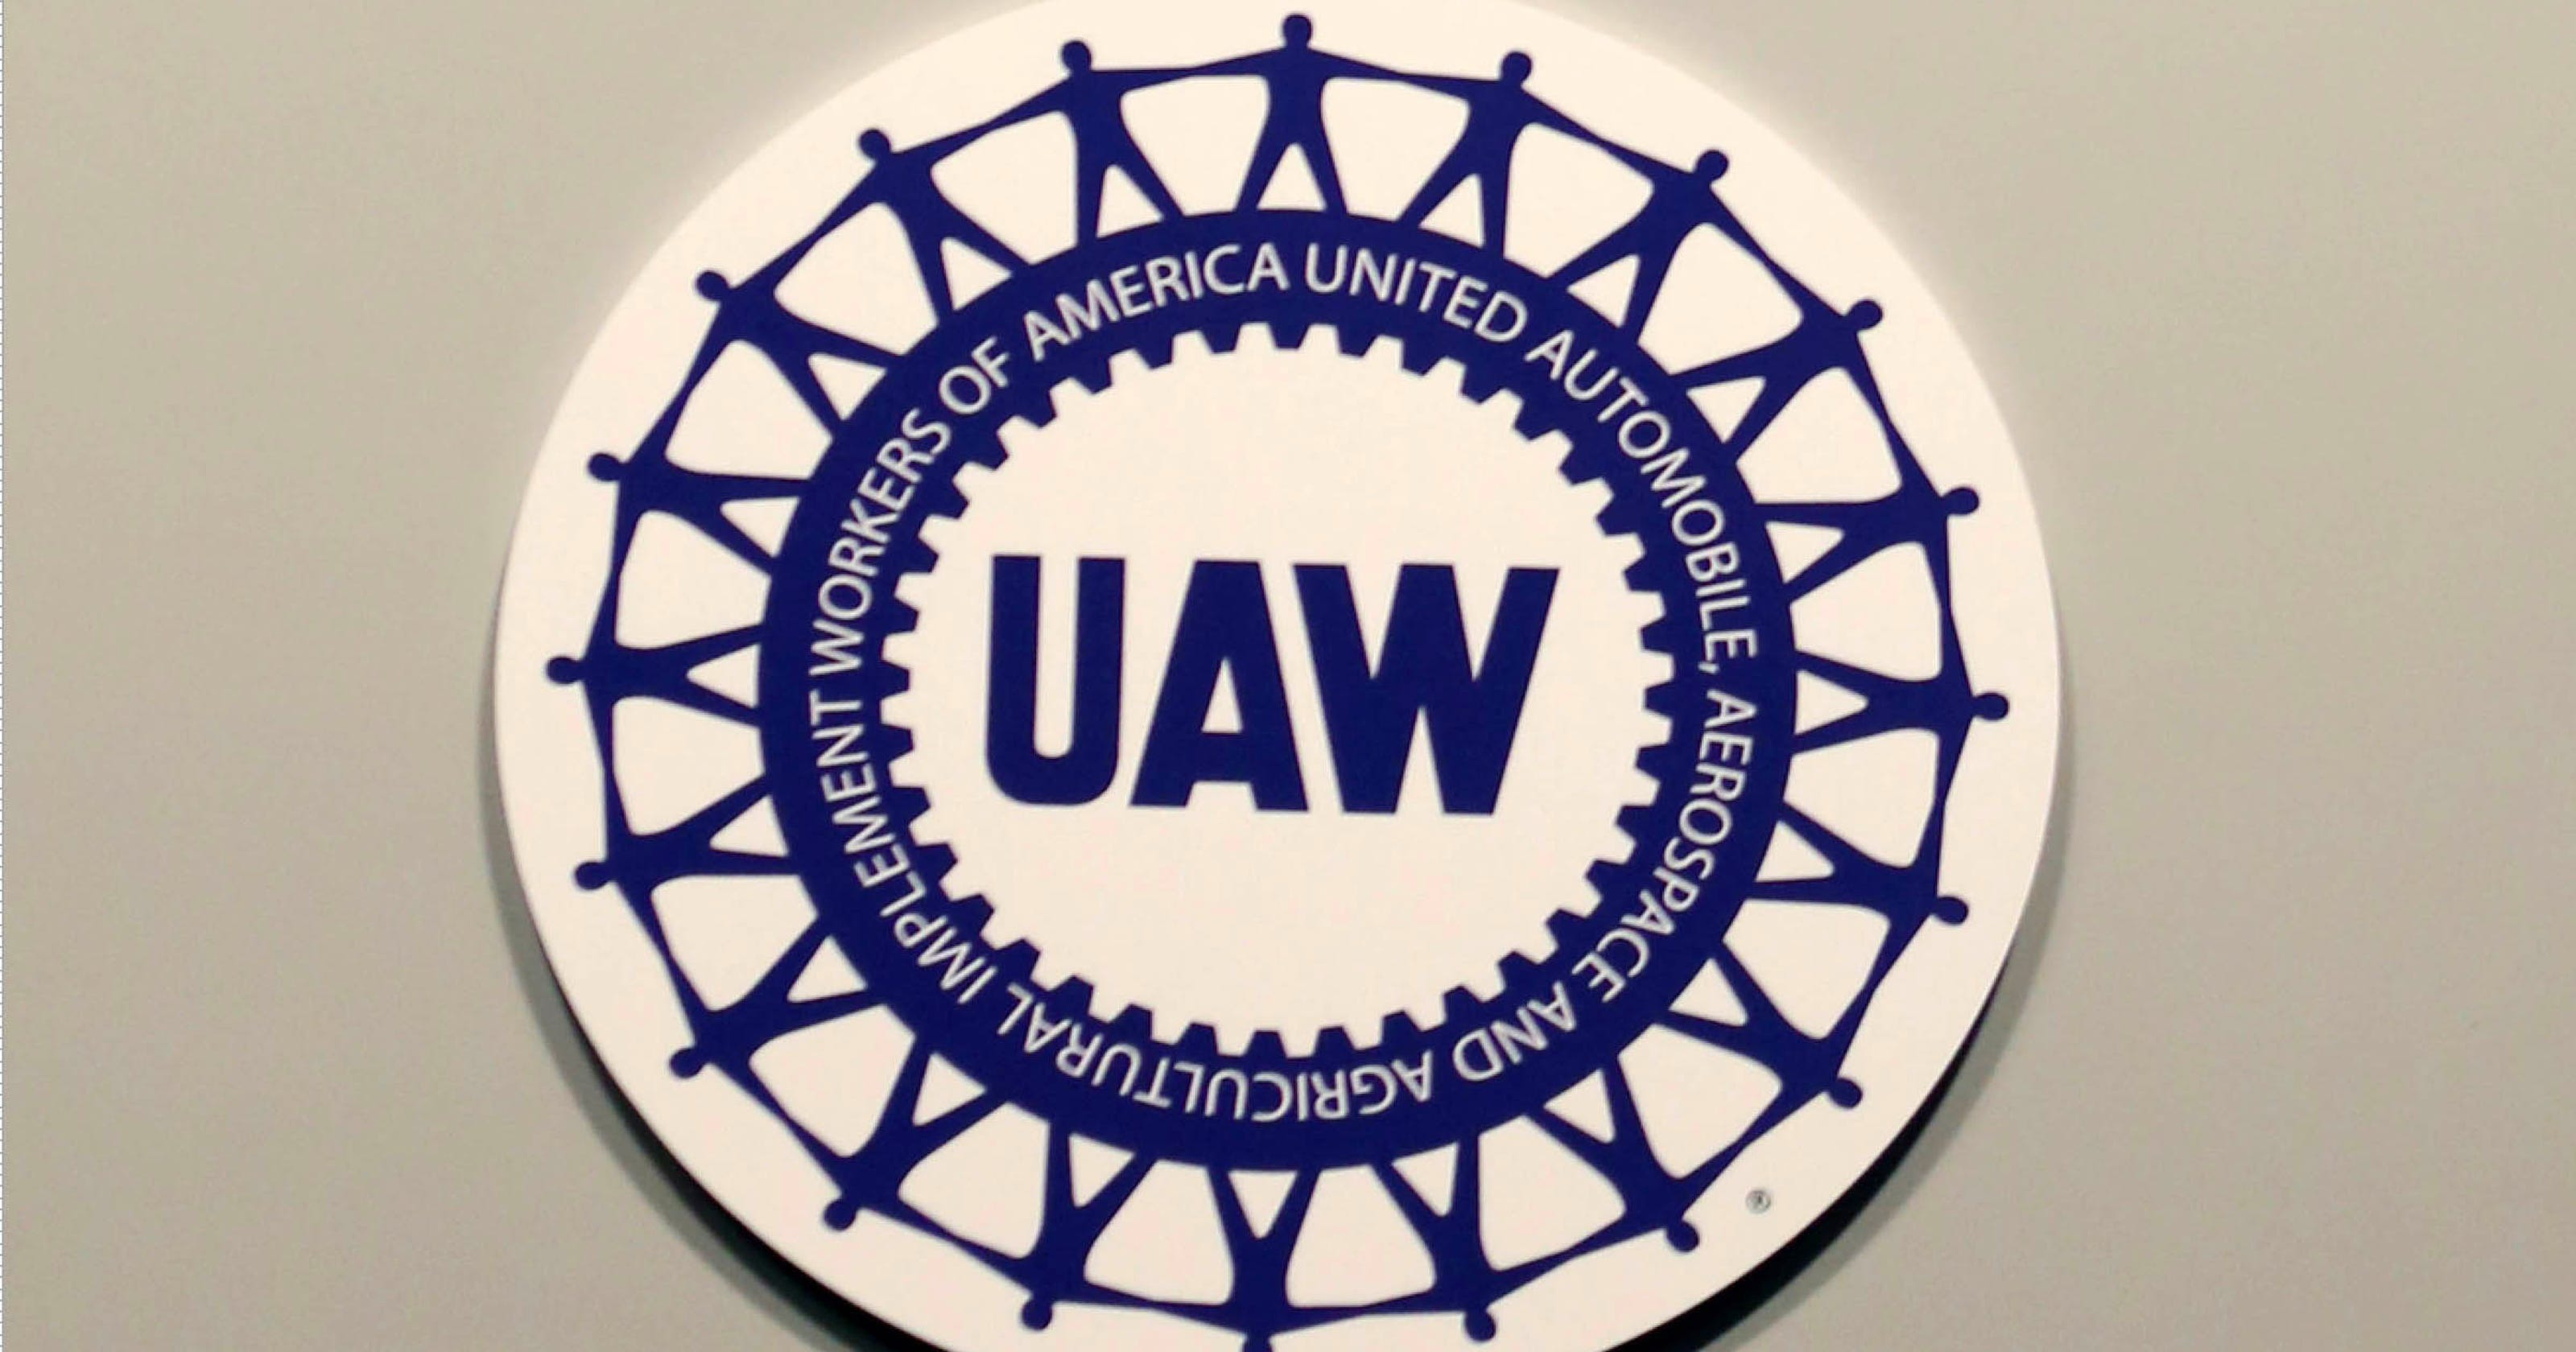 How UAW keeps growing despite scandal, corruption